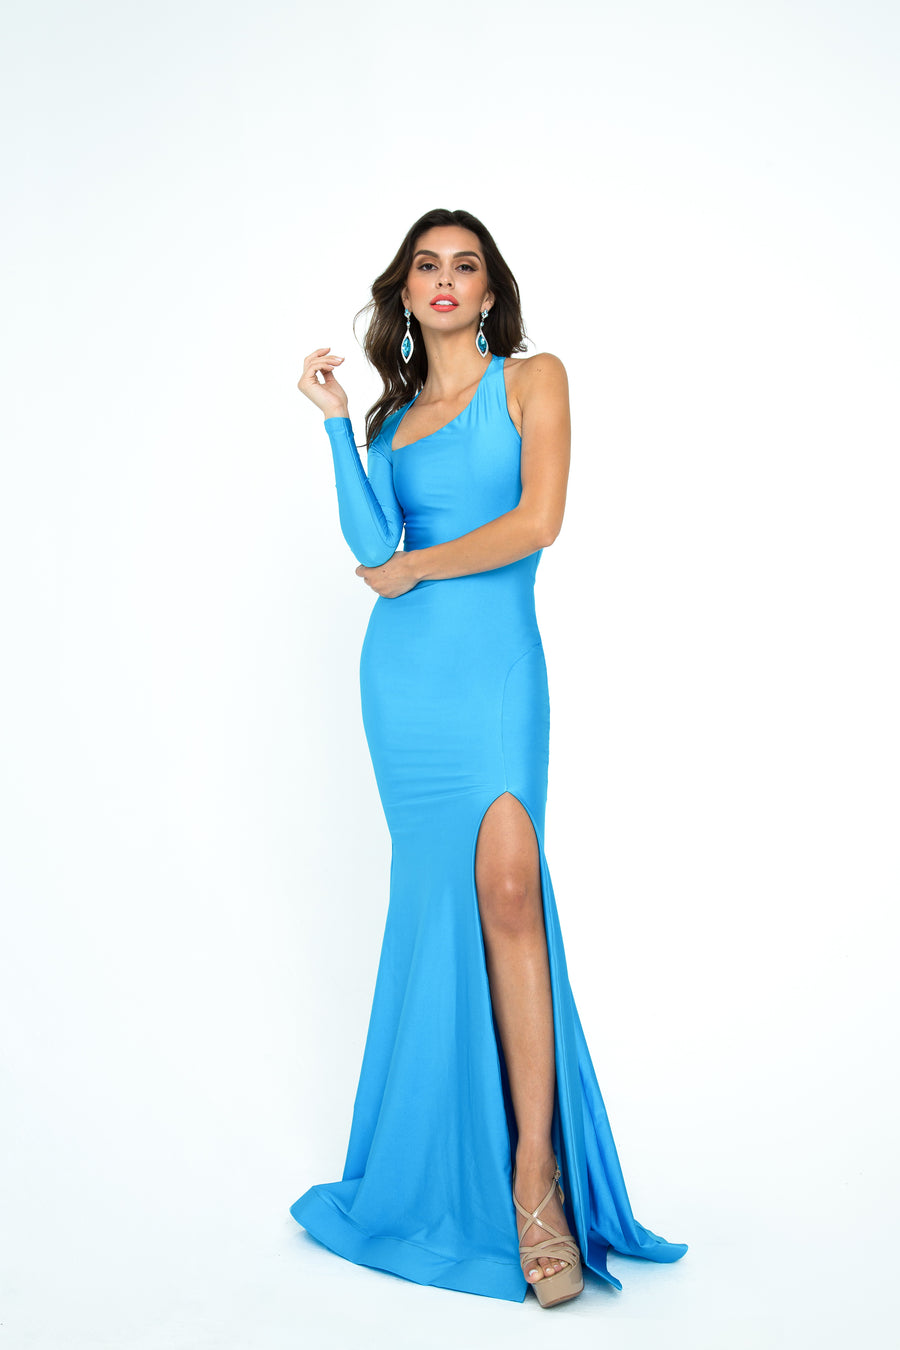 Jovani Pageant Dresses And Custom Pageant Dresses For Miss And Teen